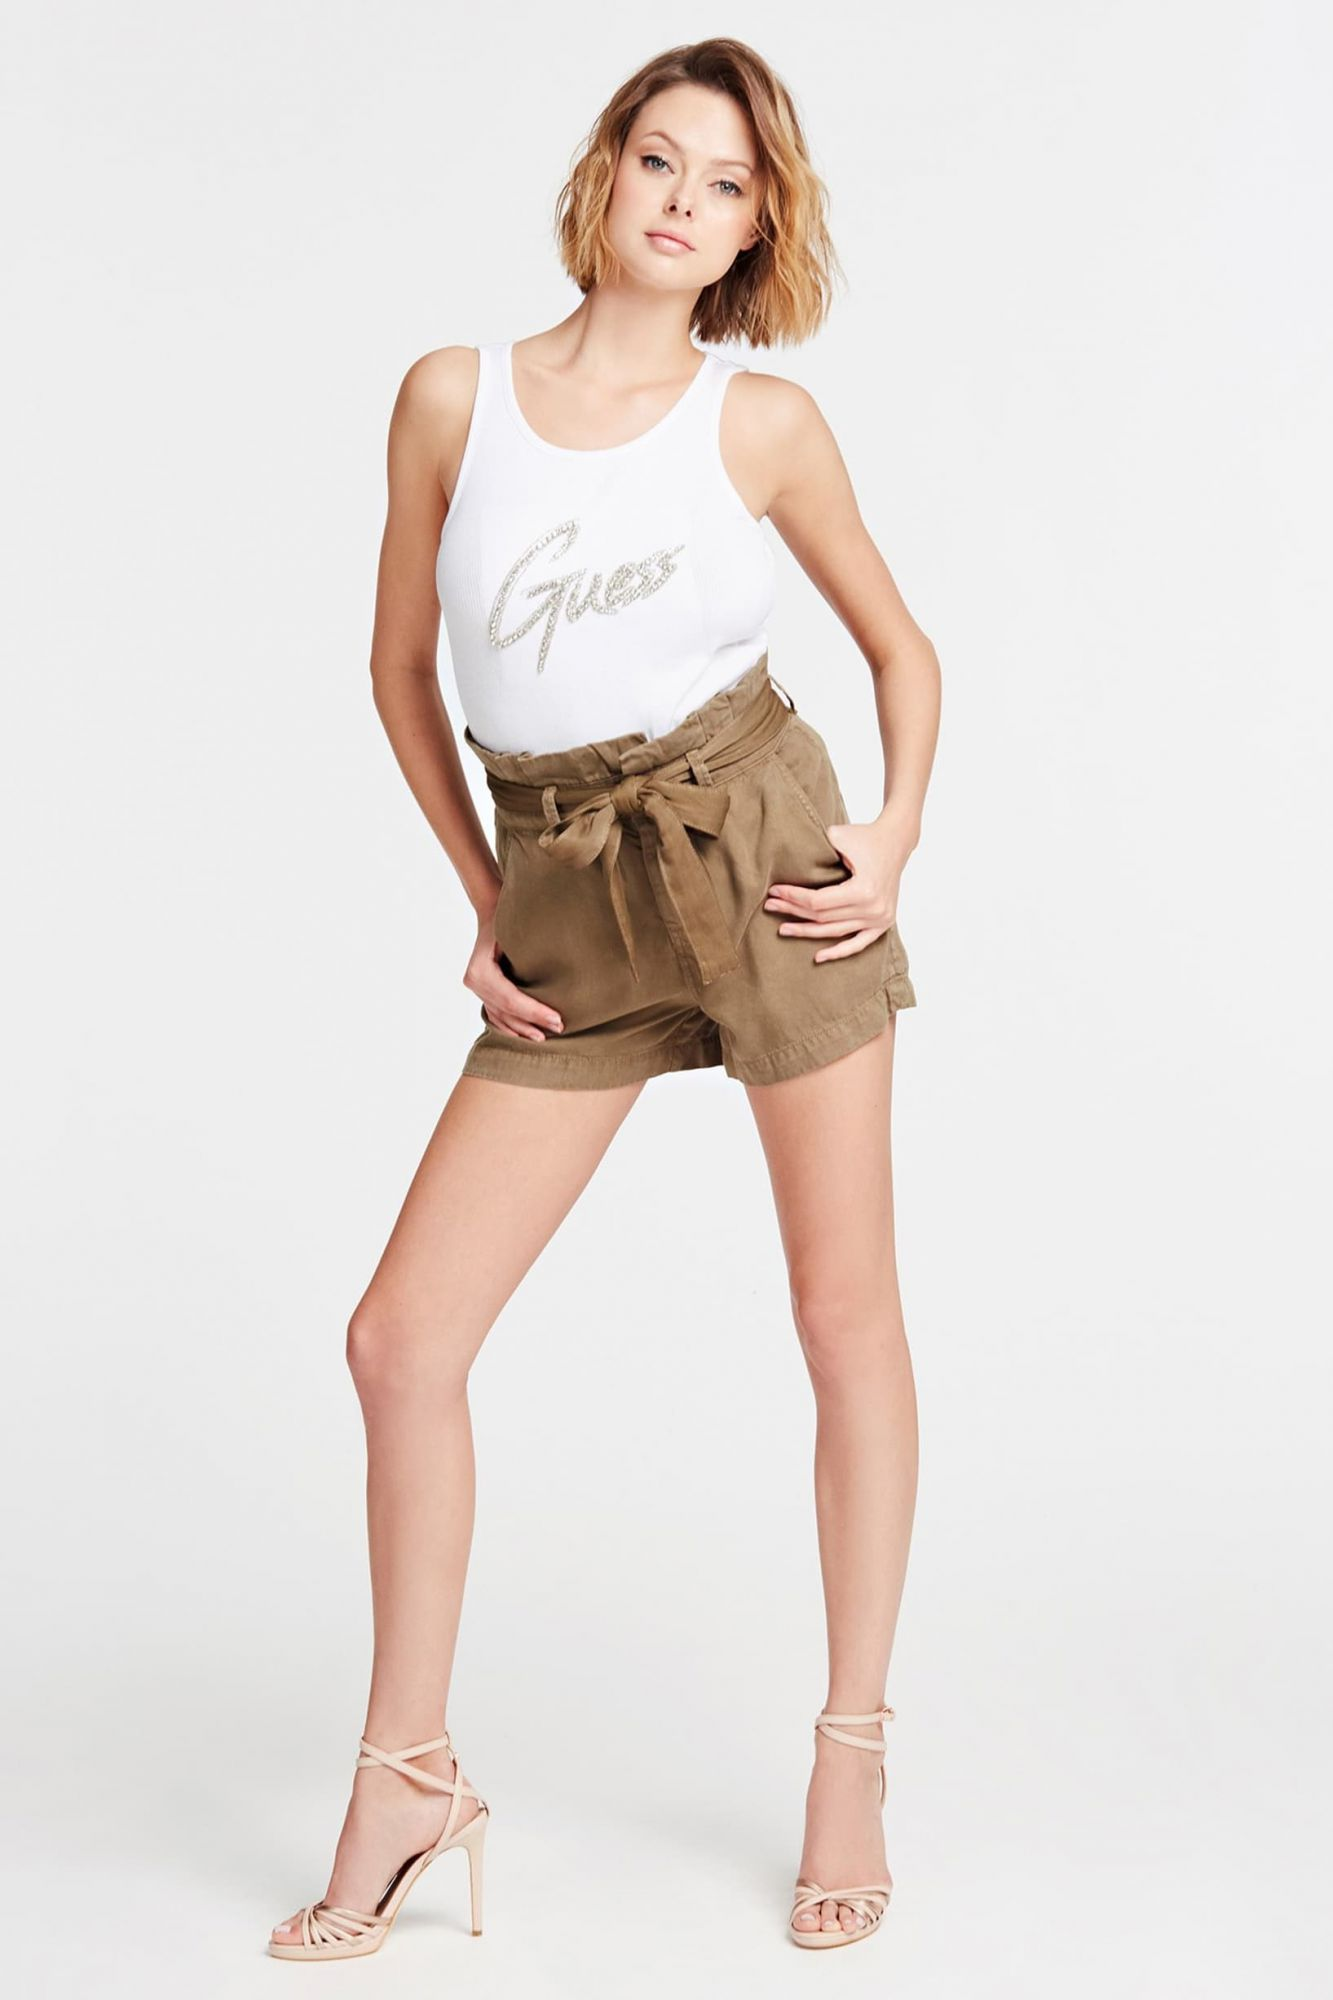 Guess white top Front Logo Tank Top